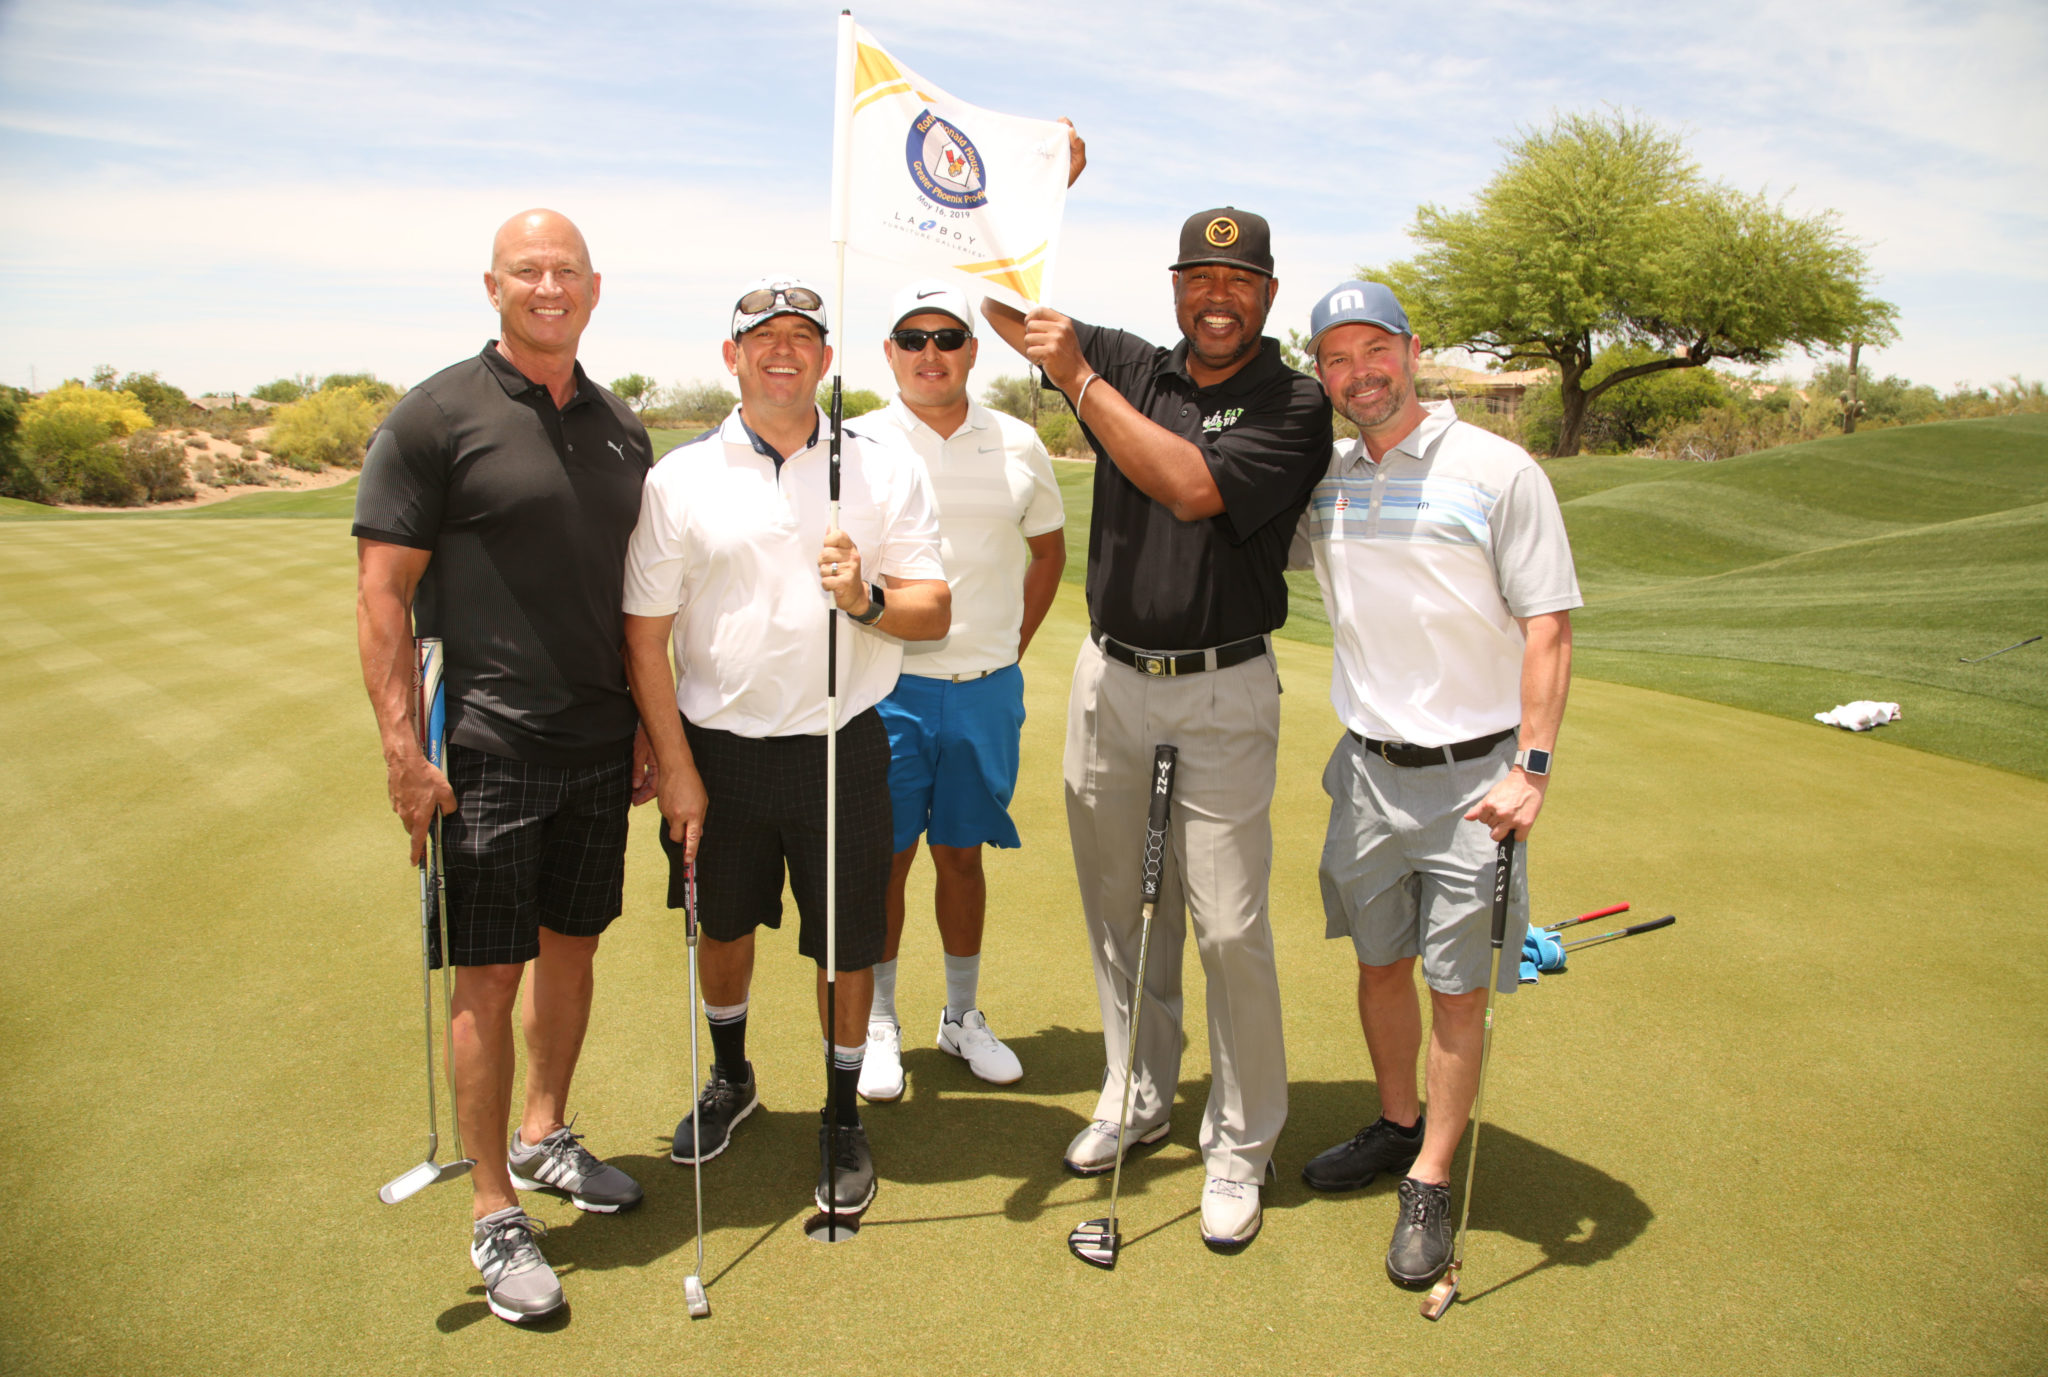 Golfers stand on the green of the Greater Phoenix Pro-Am